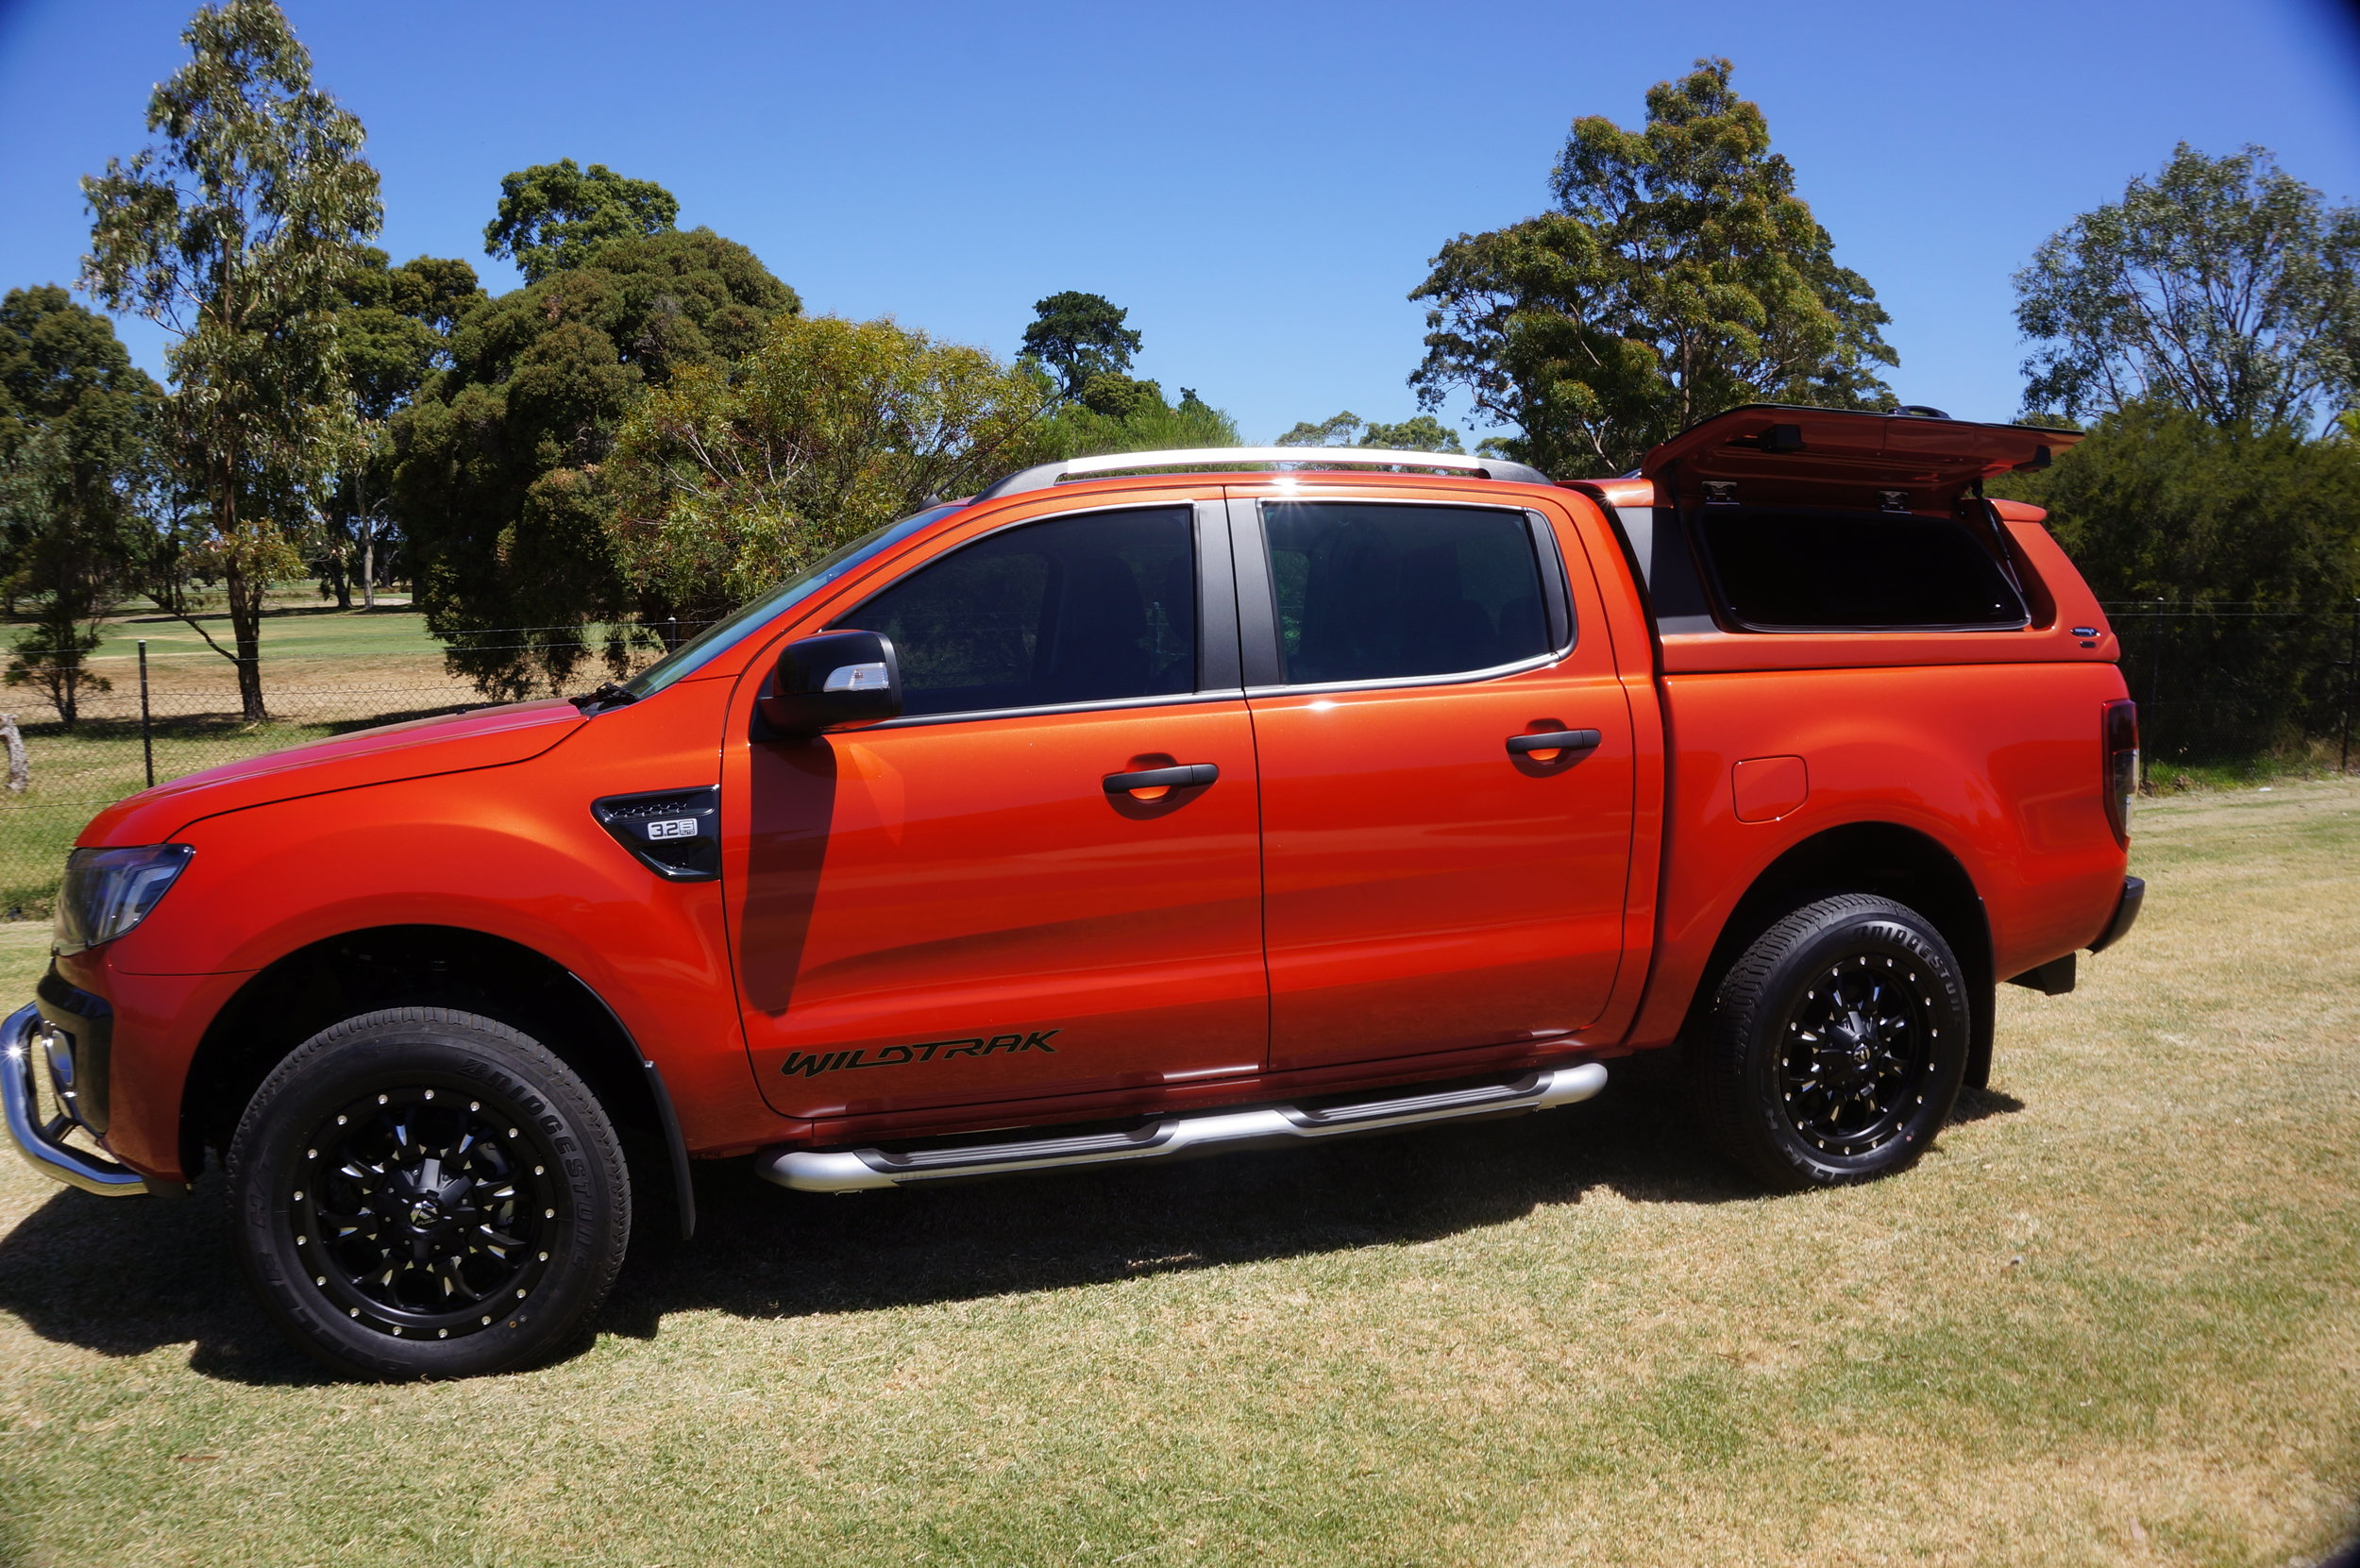 Ford Ranger Twentyten canopy Orange 11.jpg